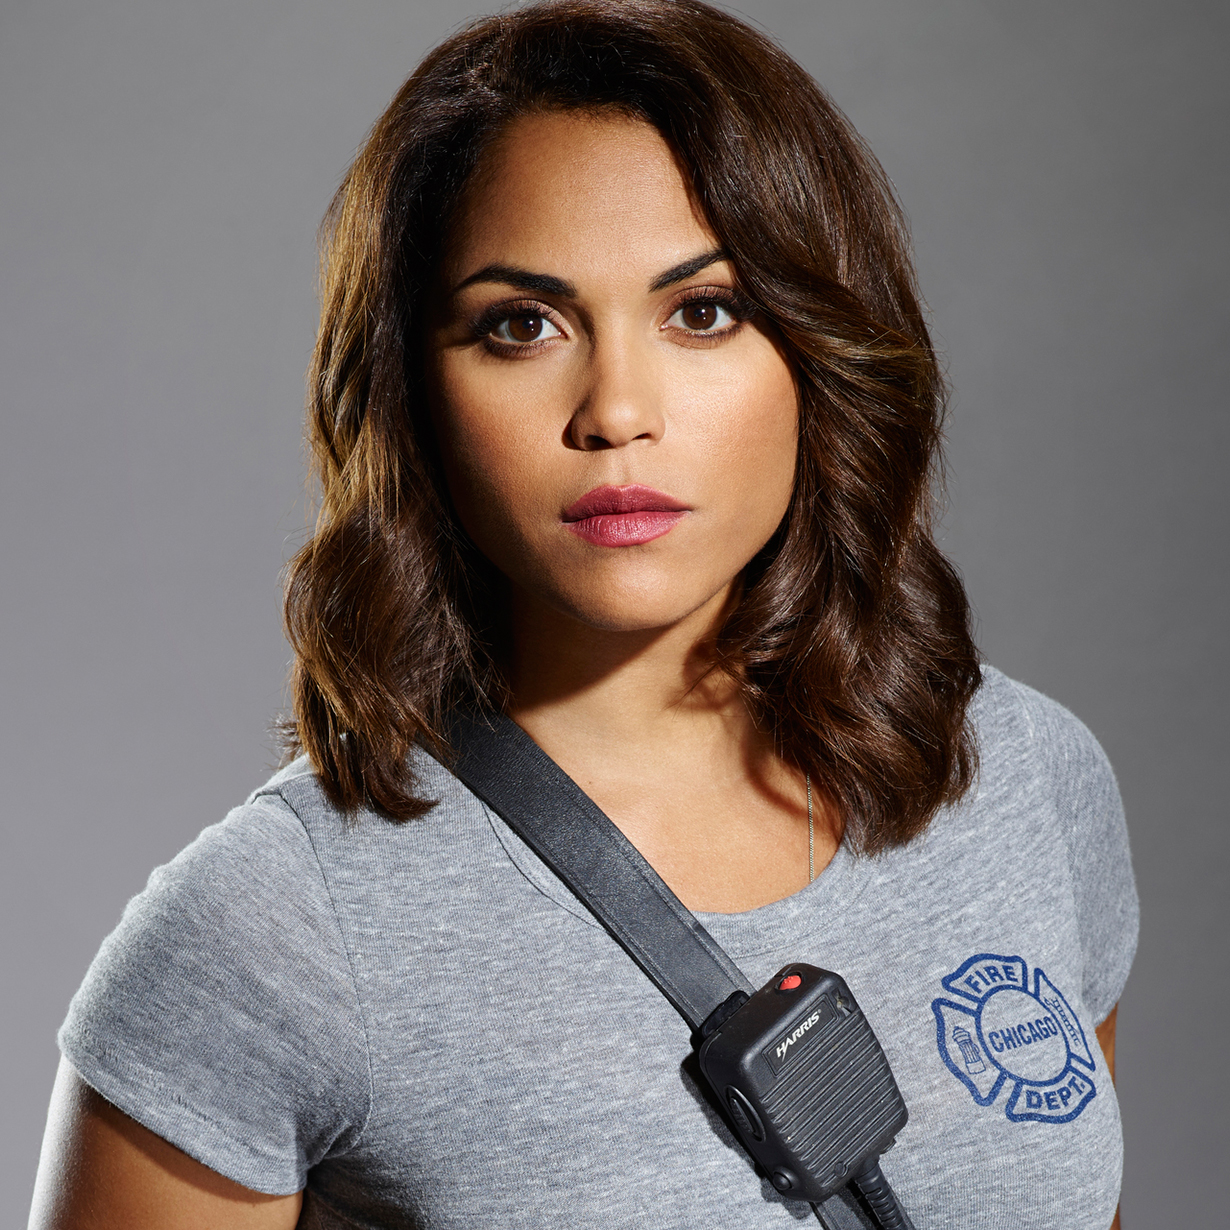 Monica raymund about chicago fire nbc